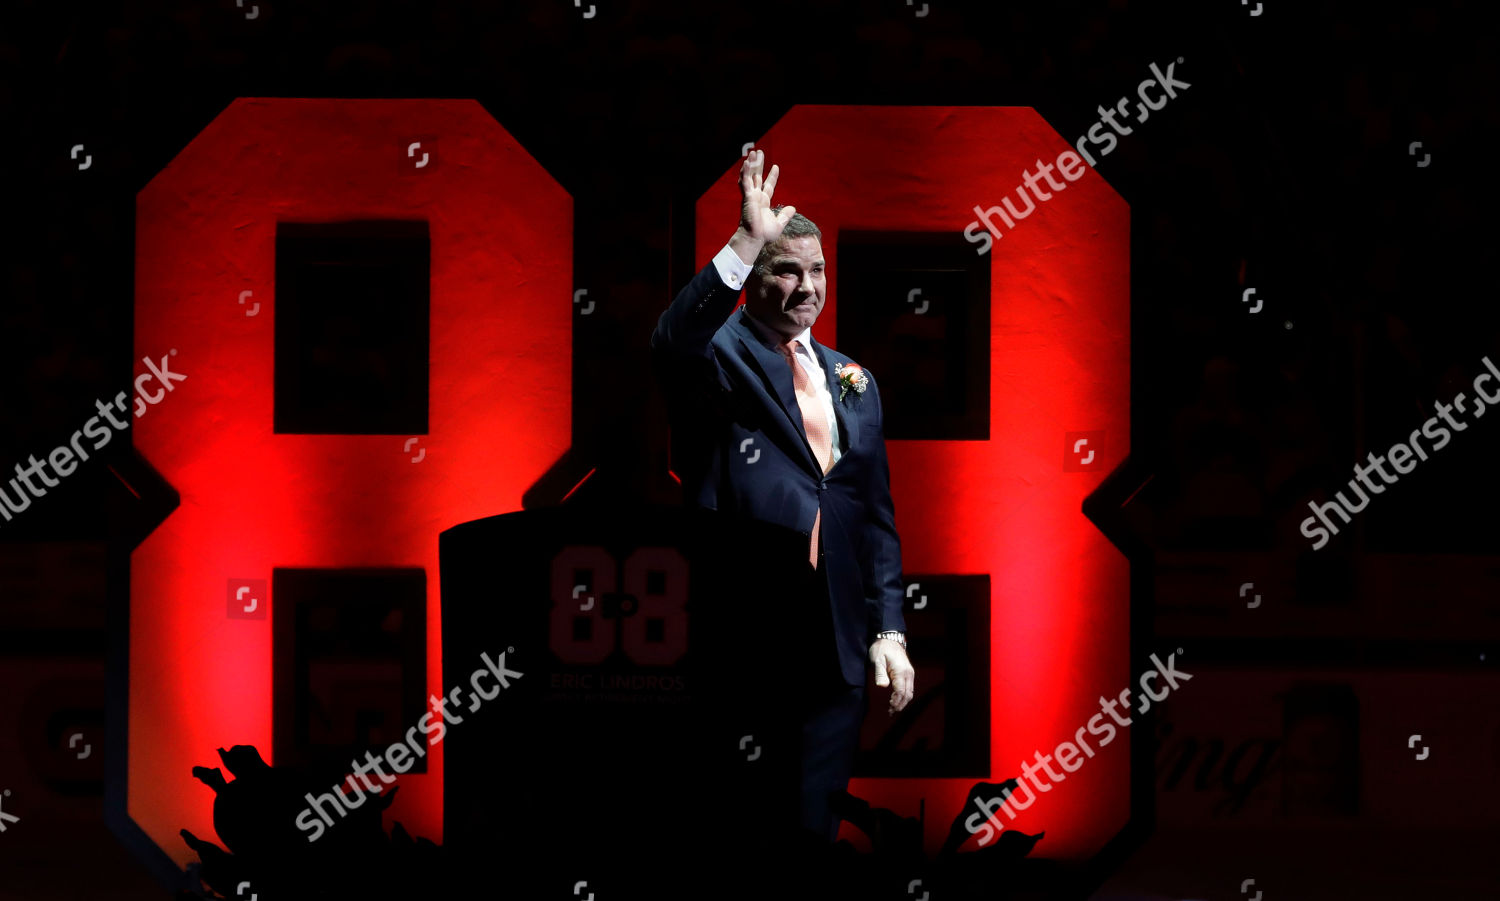 Former Philadelphia Flyers player Eric Lindros waves